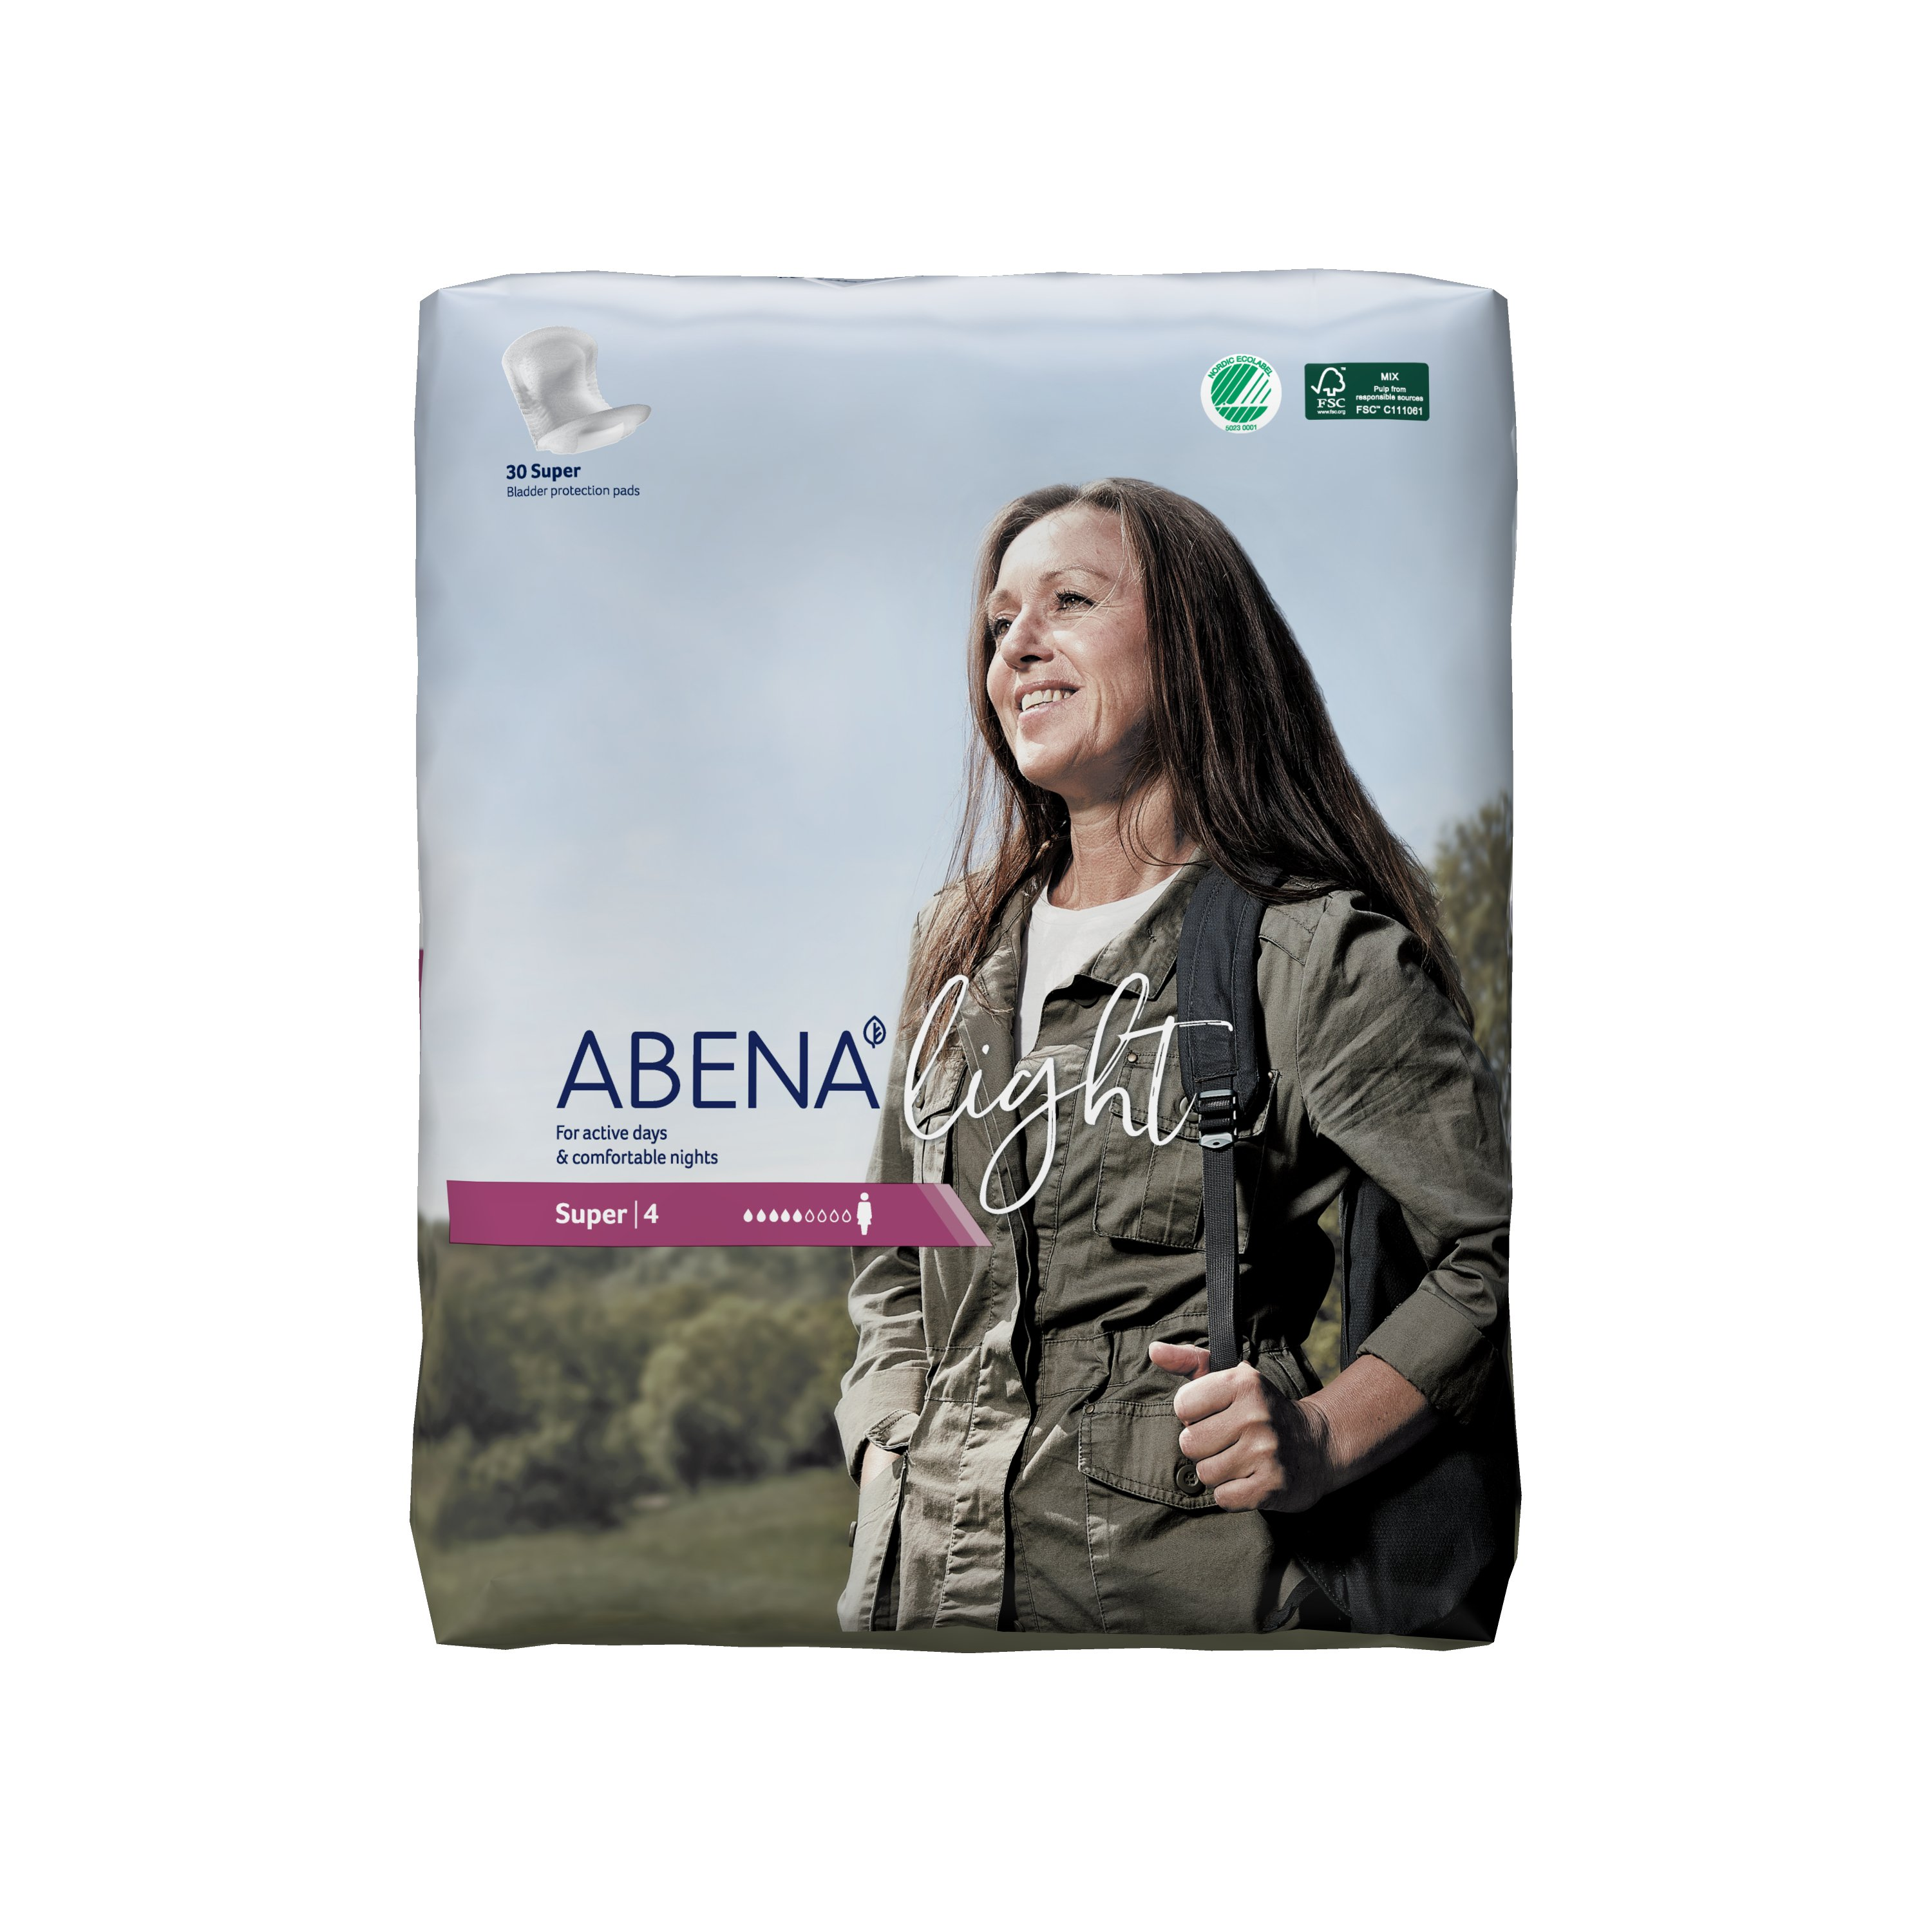 Abena Light Super Disposable Unisex Adult Bladder Control Pad, Moderate Absorbency, 1000017160, One Size Fits Most -  Case of 180 Pads (6 Bags)